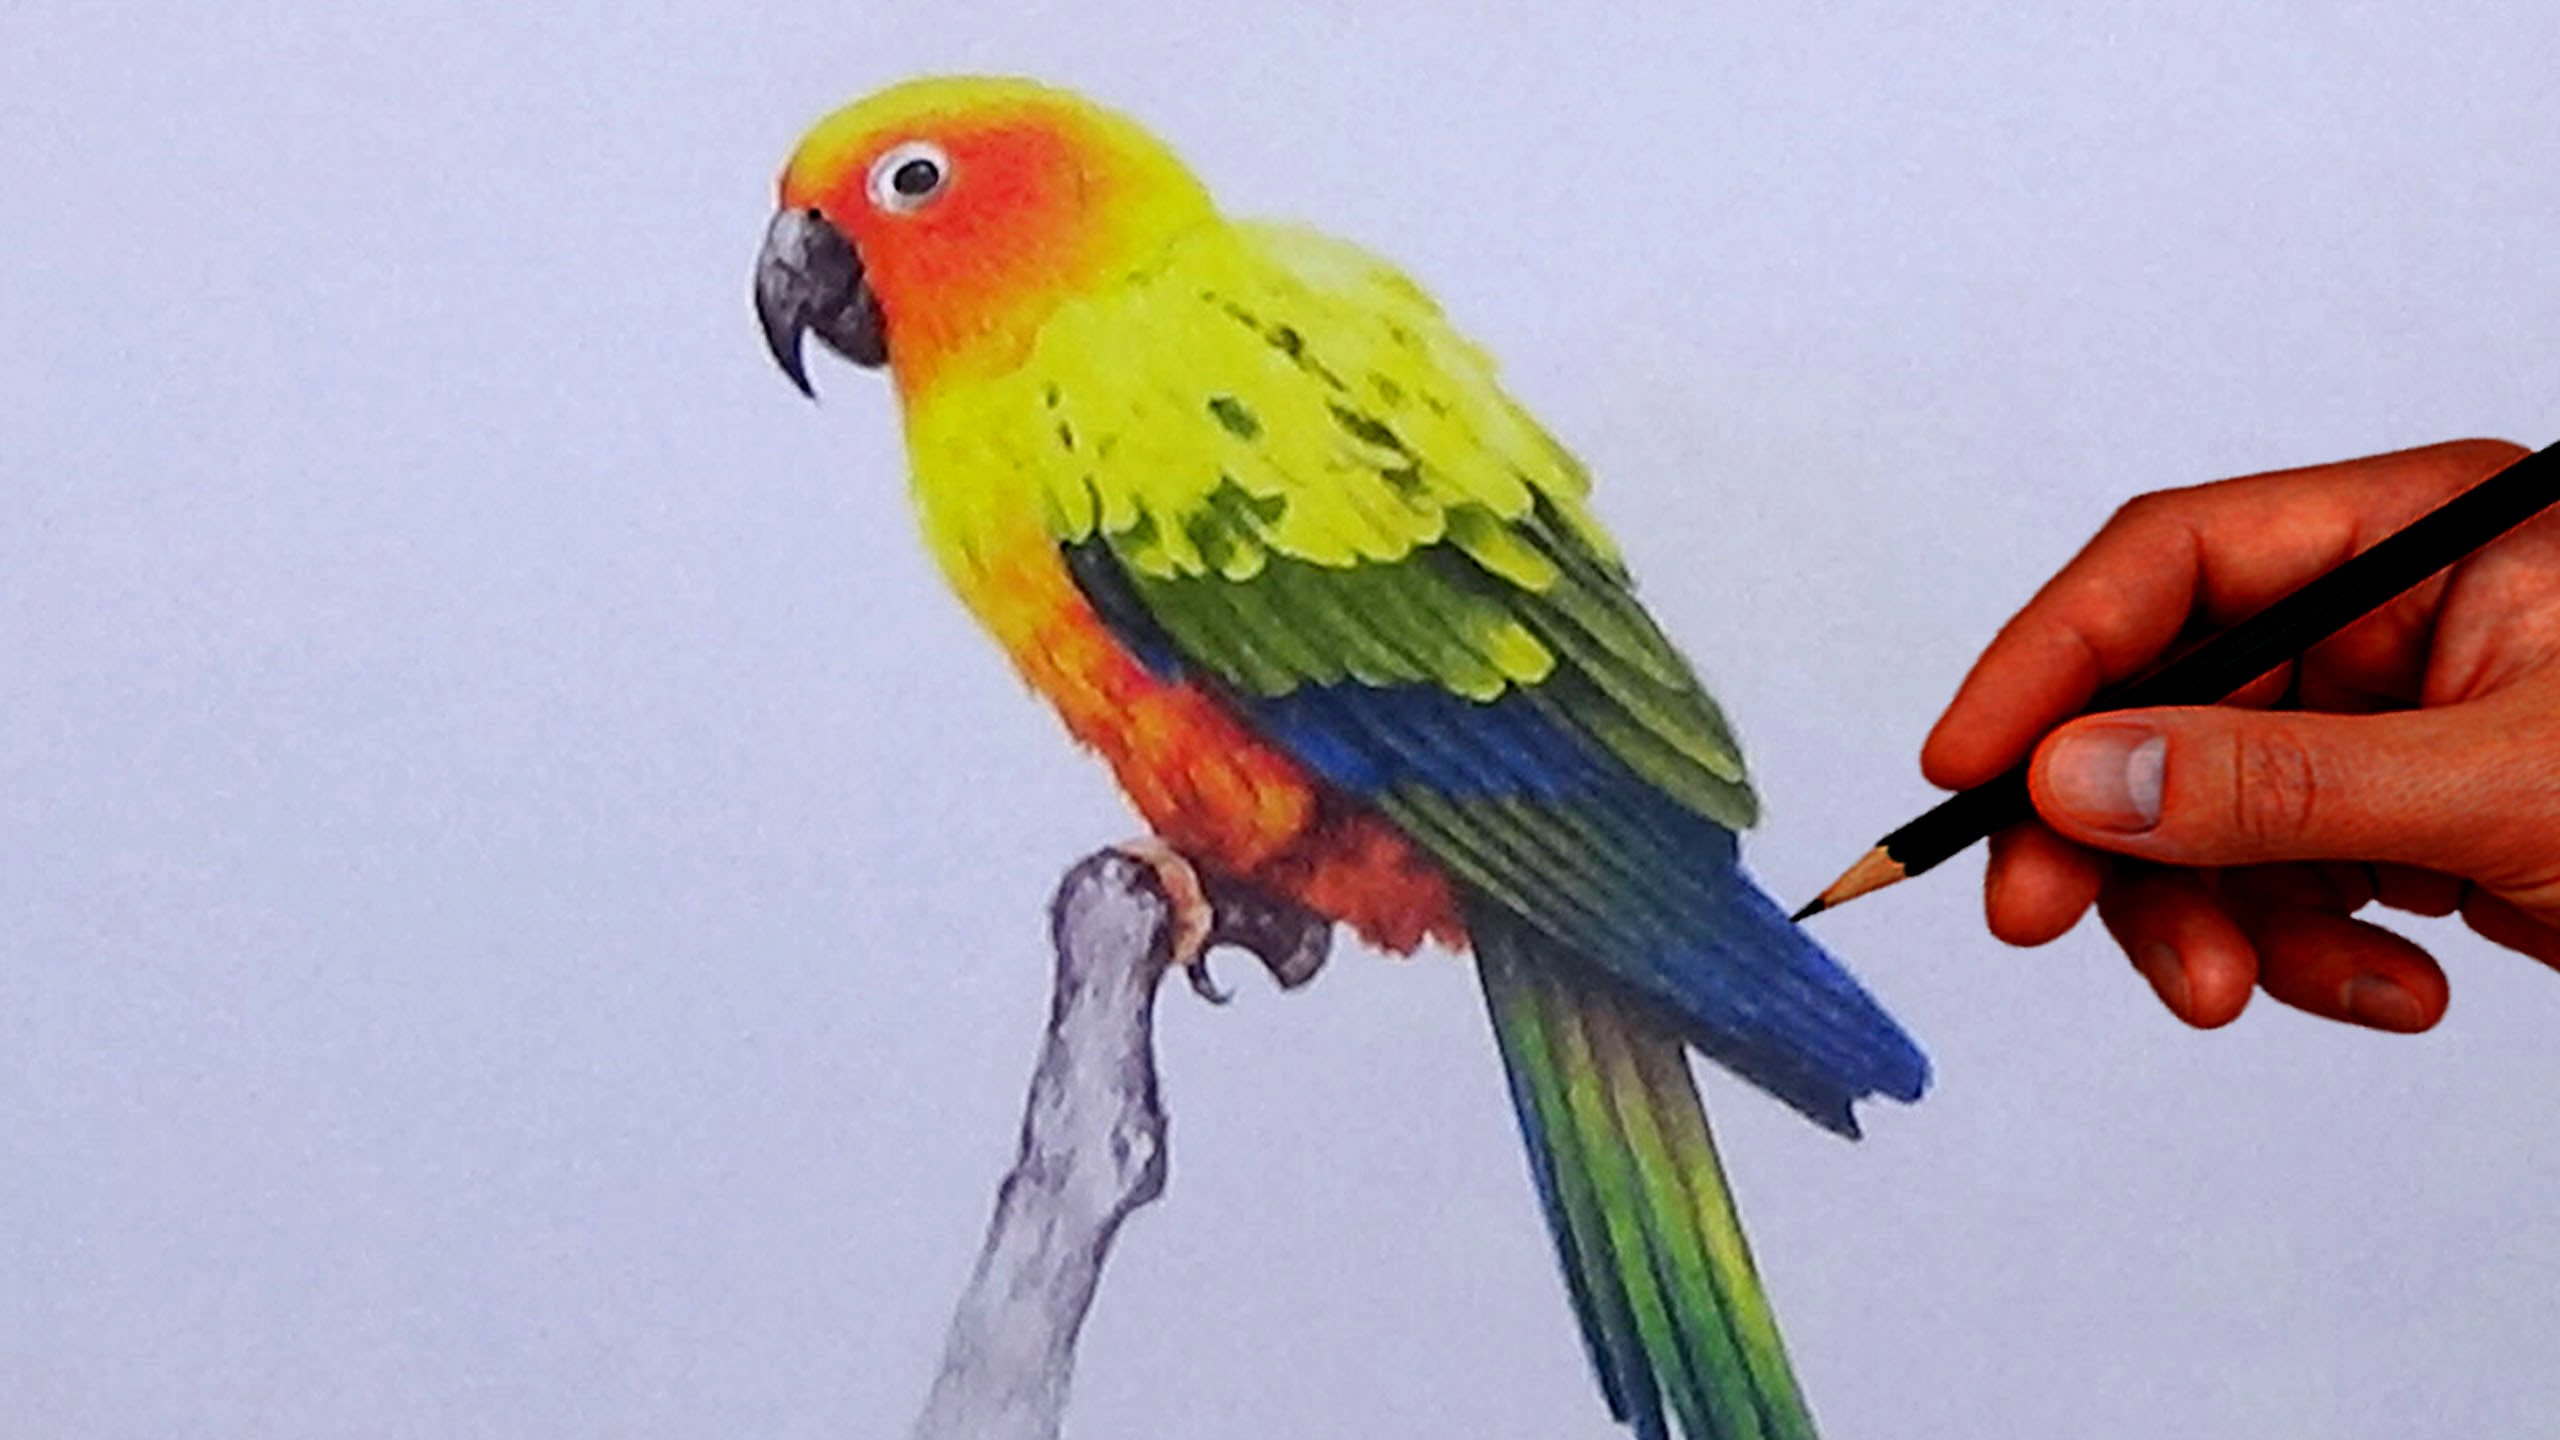 2560x1440 How To Draw A Bird With Simple Colored Pencils